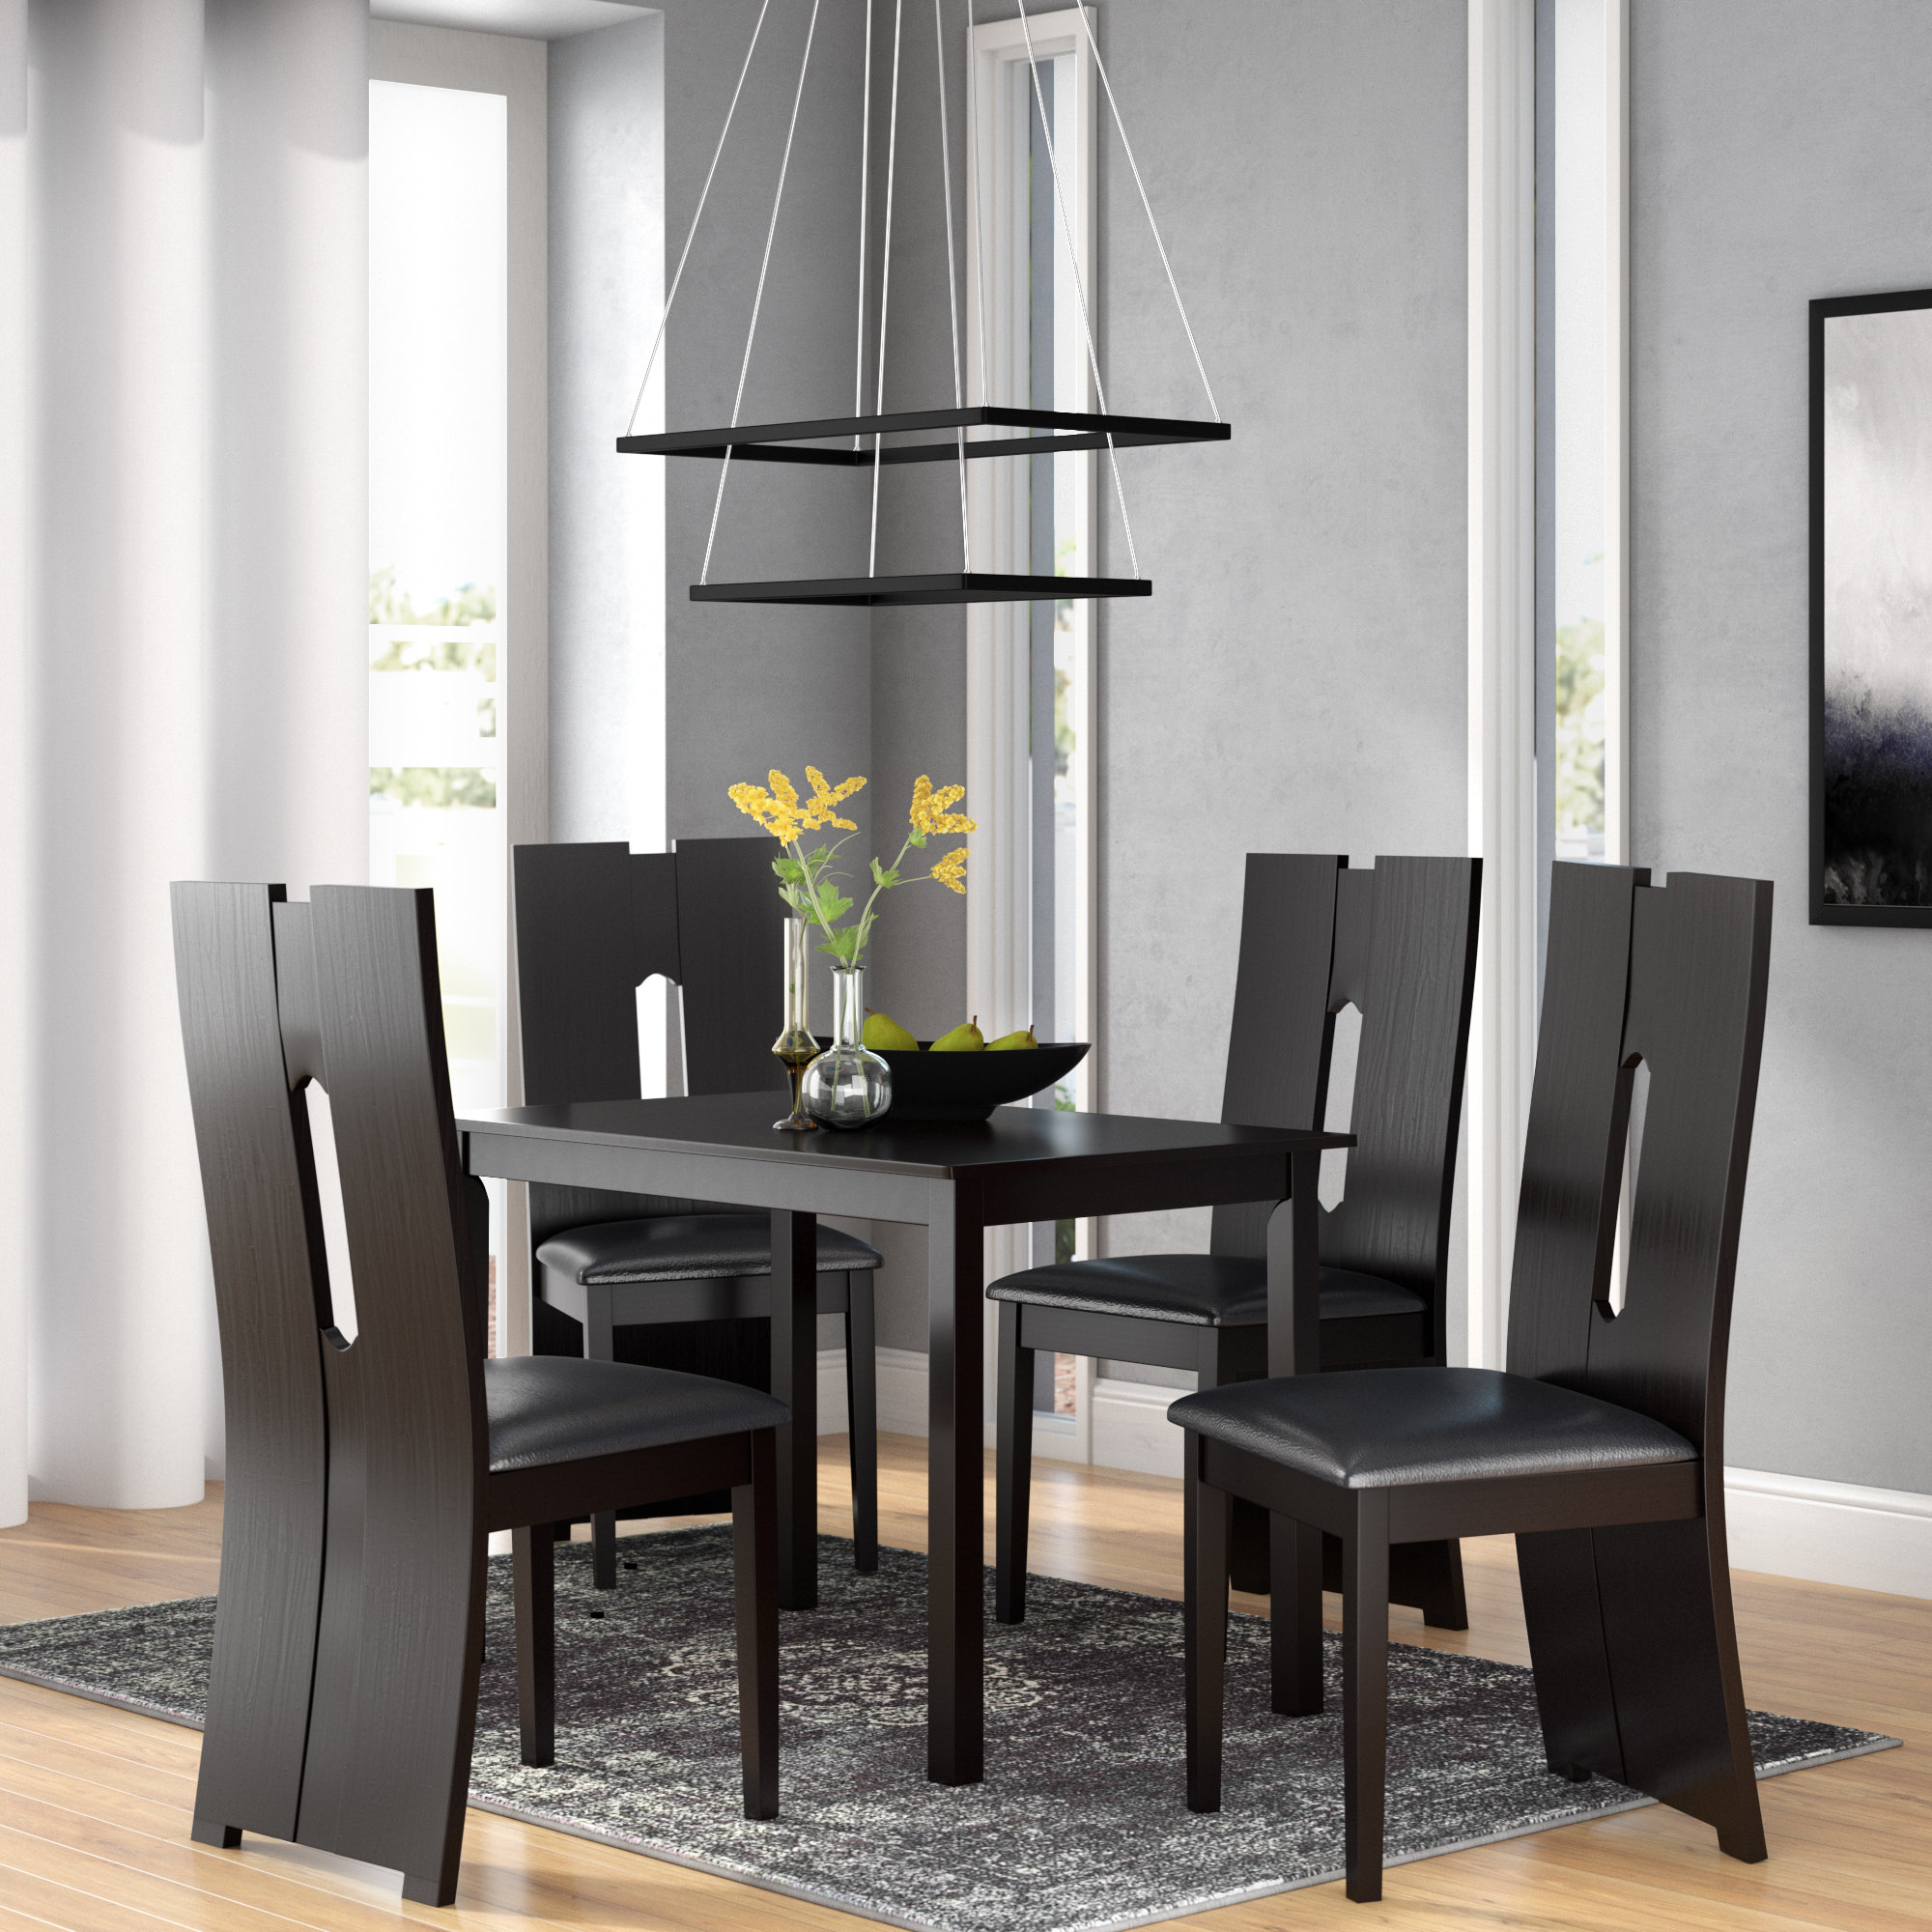 Noyes 5 Piece Dining Sets Within Famous Orren Ellis Onsted Modern And Contemporary 5 Piece Breakfast Nook (View 18 of 25)